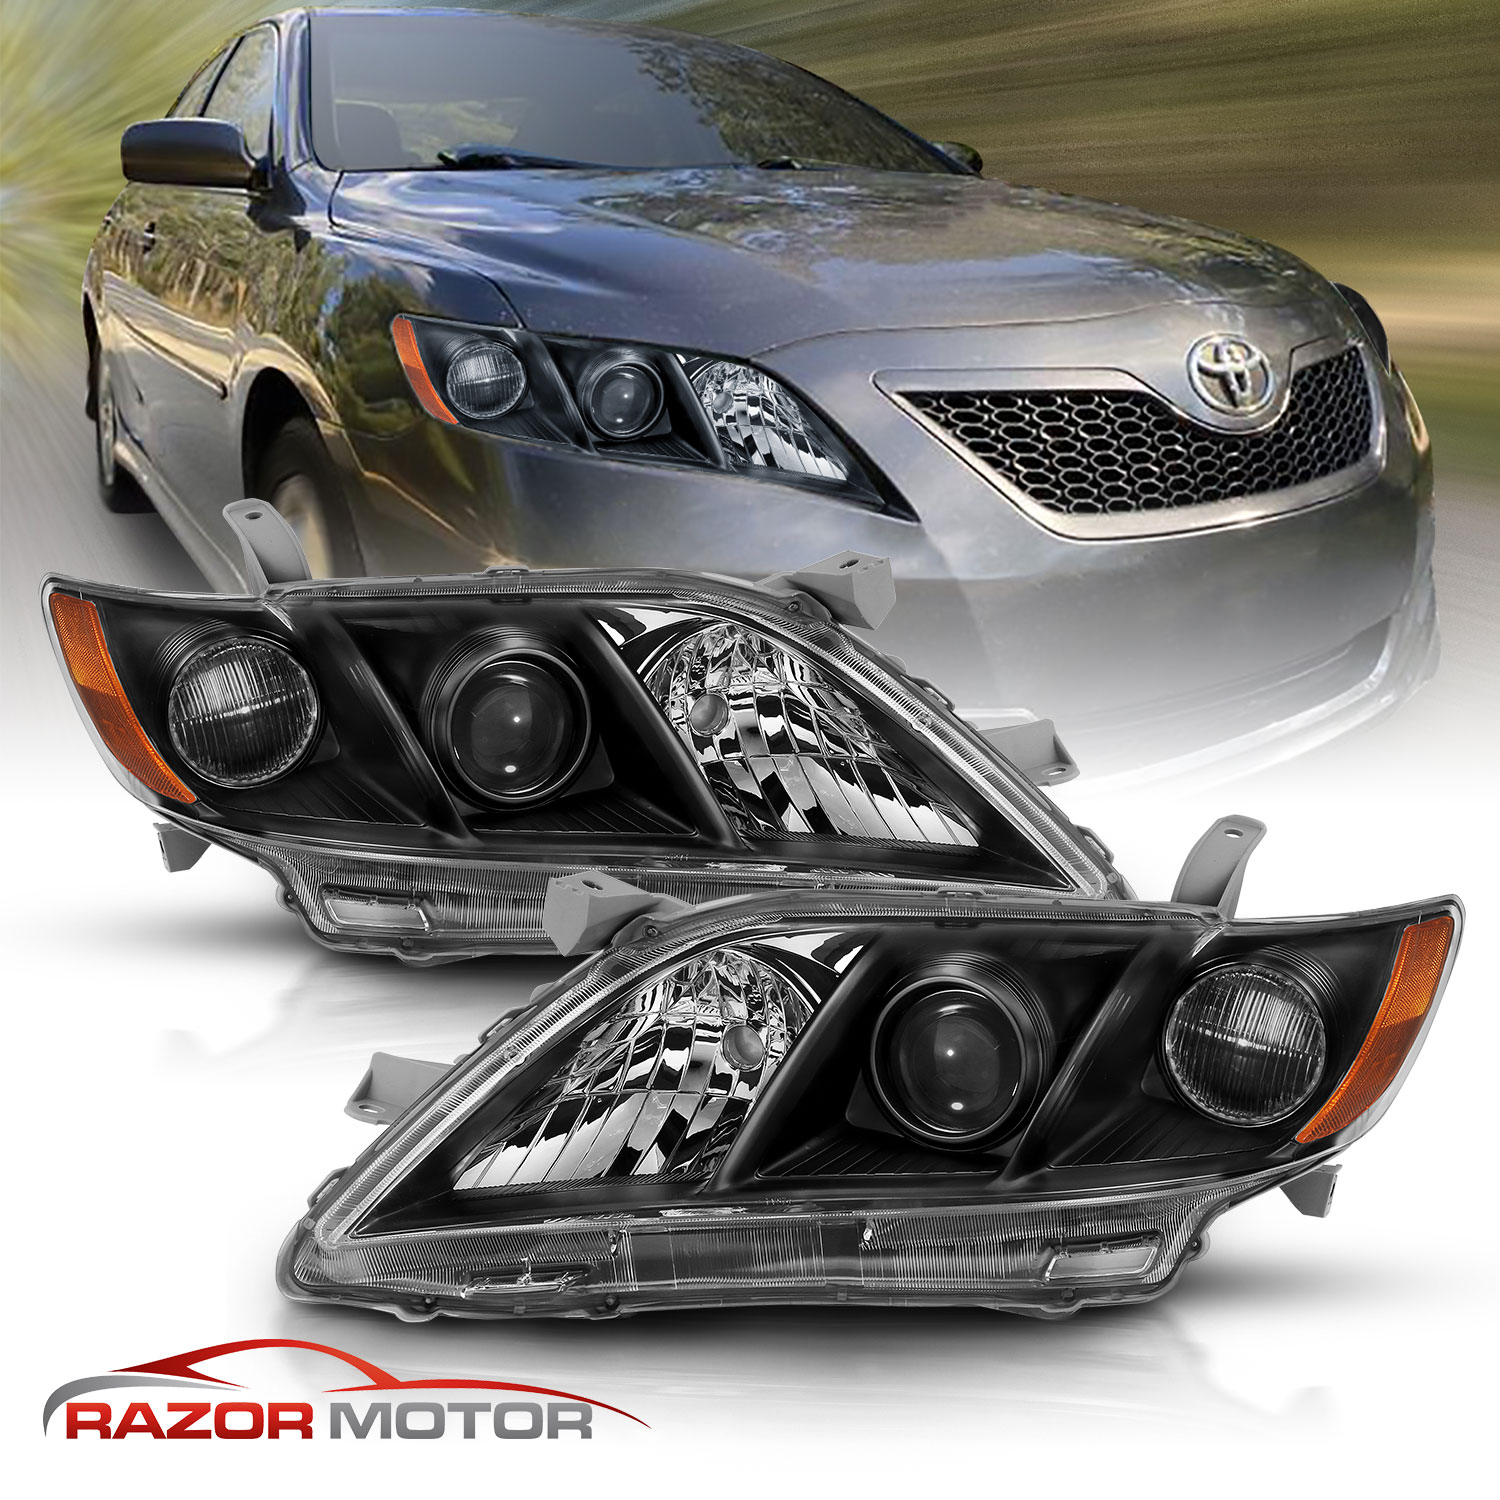 2007-2009 Right Replacement Projector Headlight For Toyota Camry US Version